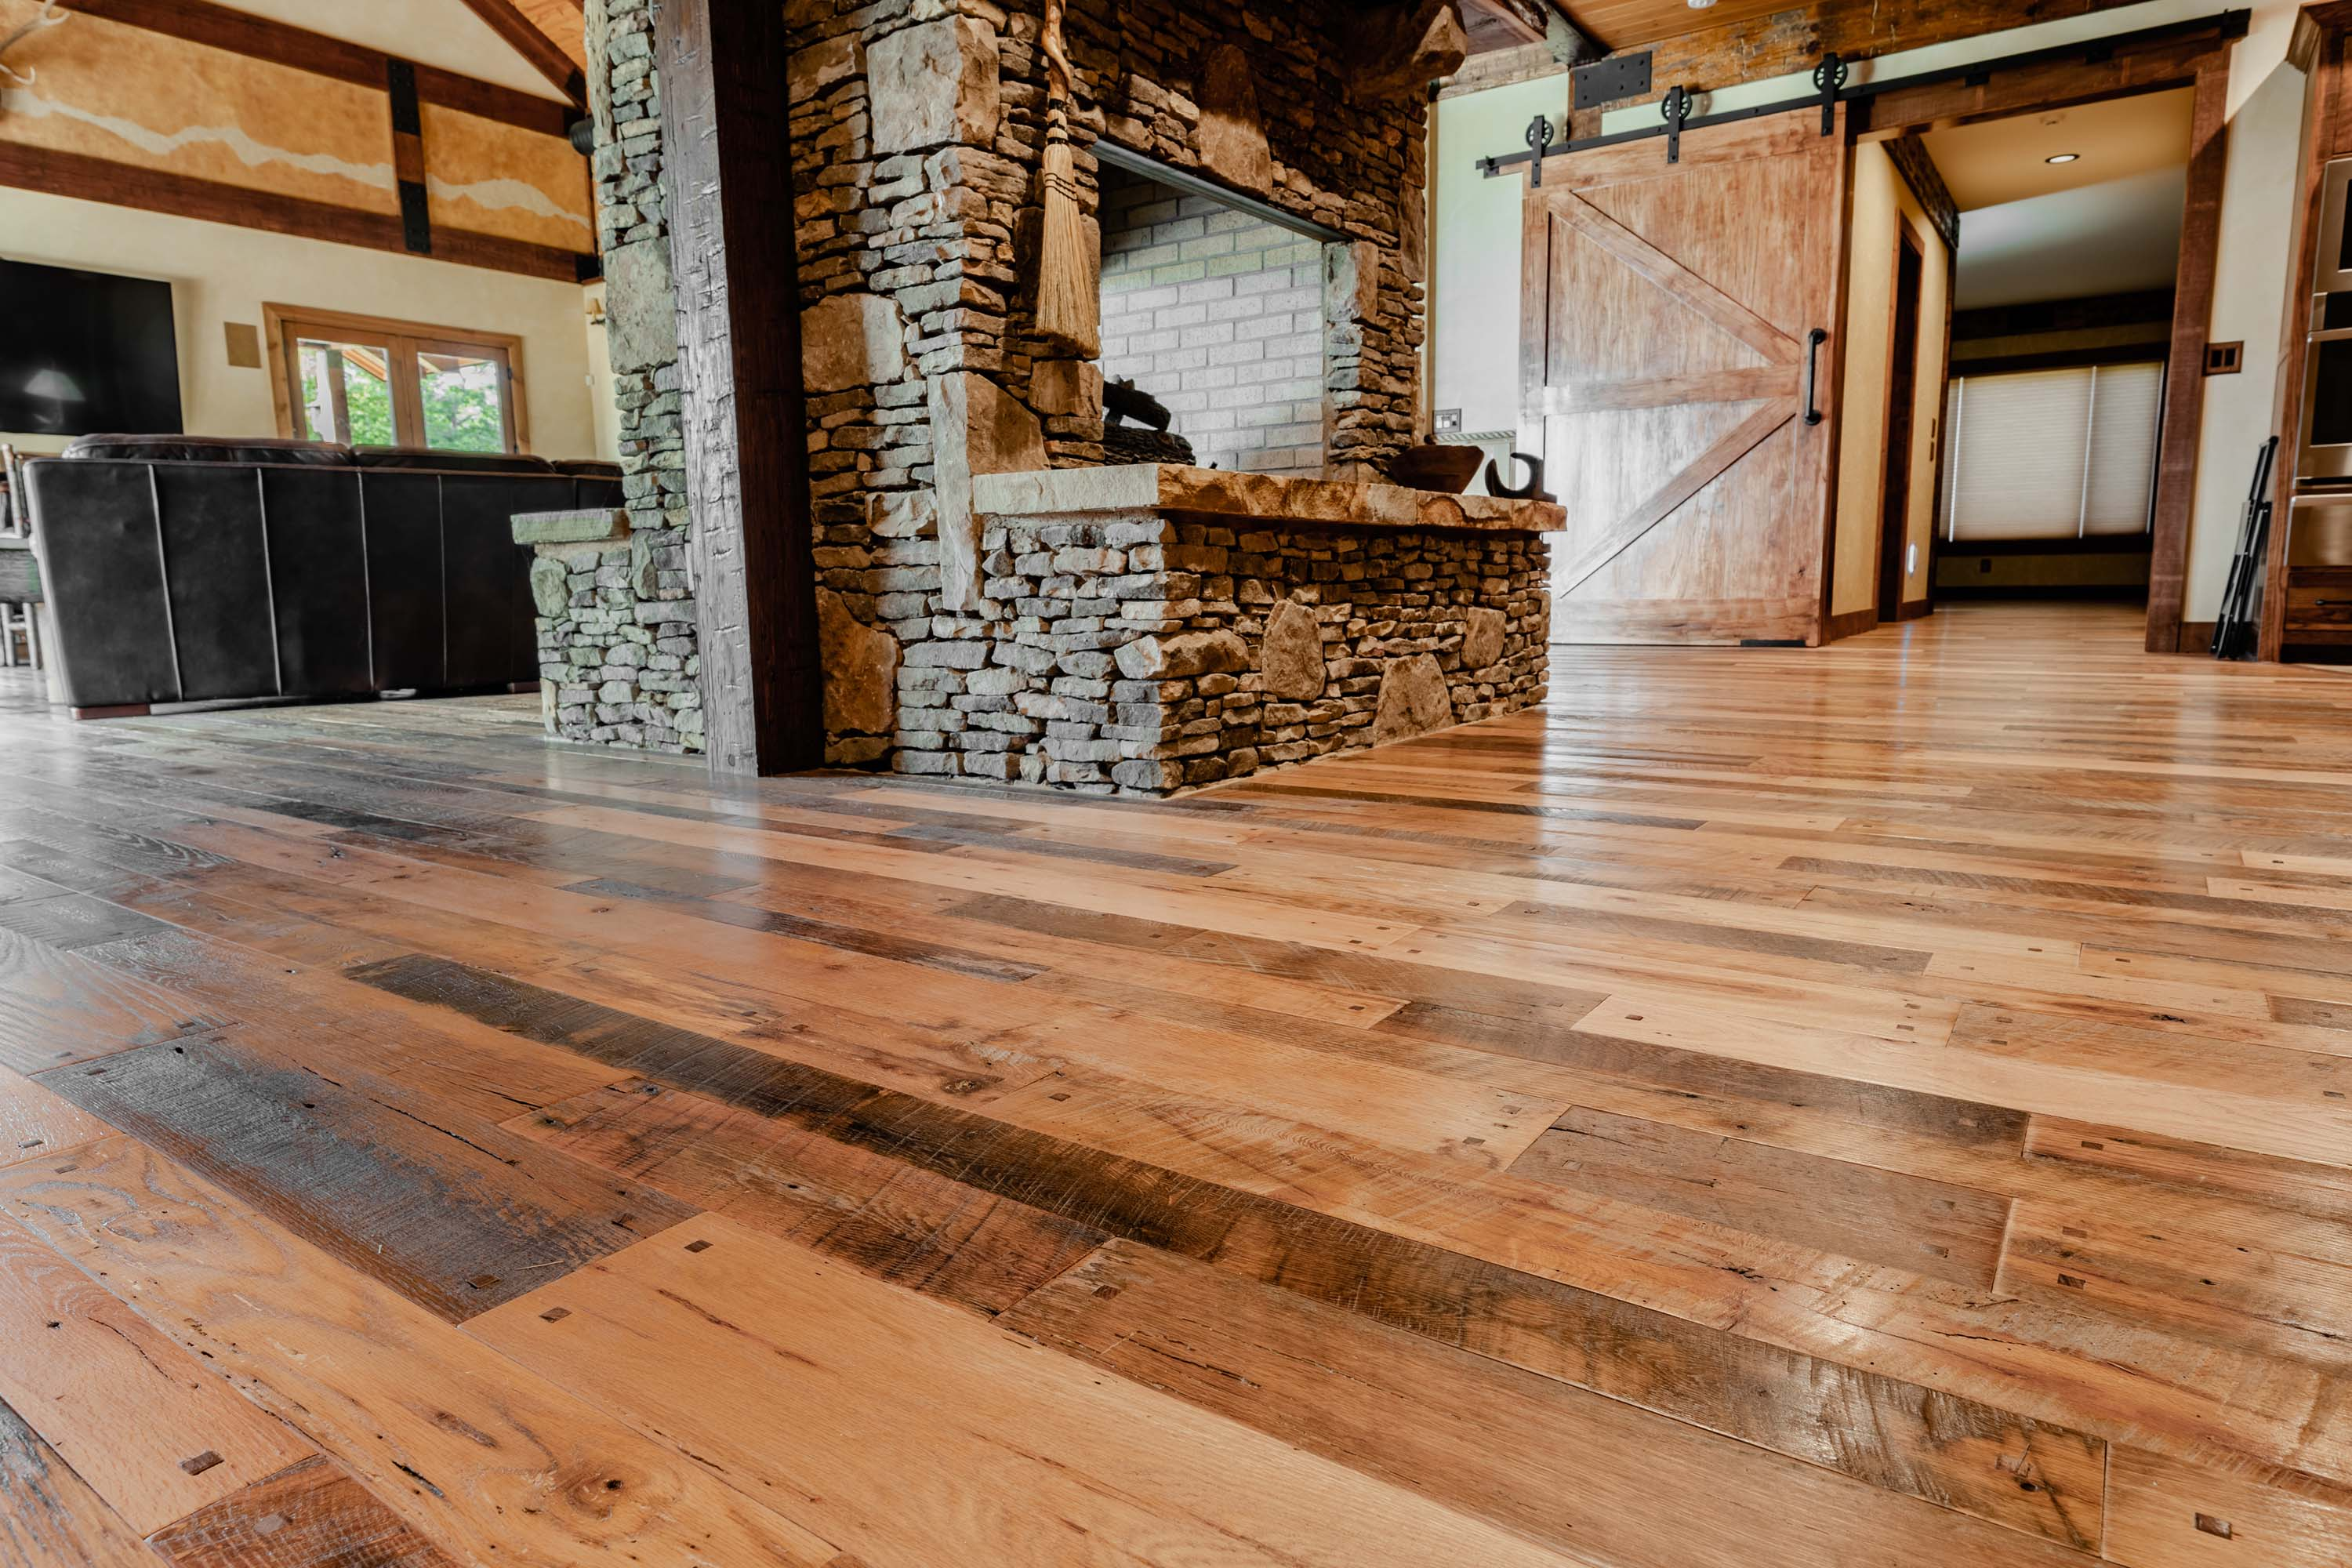 the fire place near the living room  in a cabin style house with reclaimed americana reclaimed wood flooring by Tennessee Wood Flooring. This hardwood floor is authentically made in the east tennessee area.